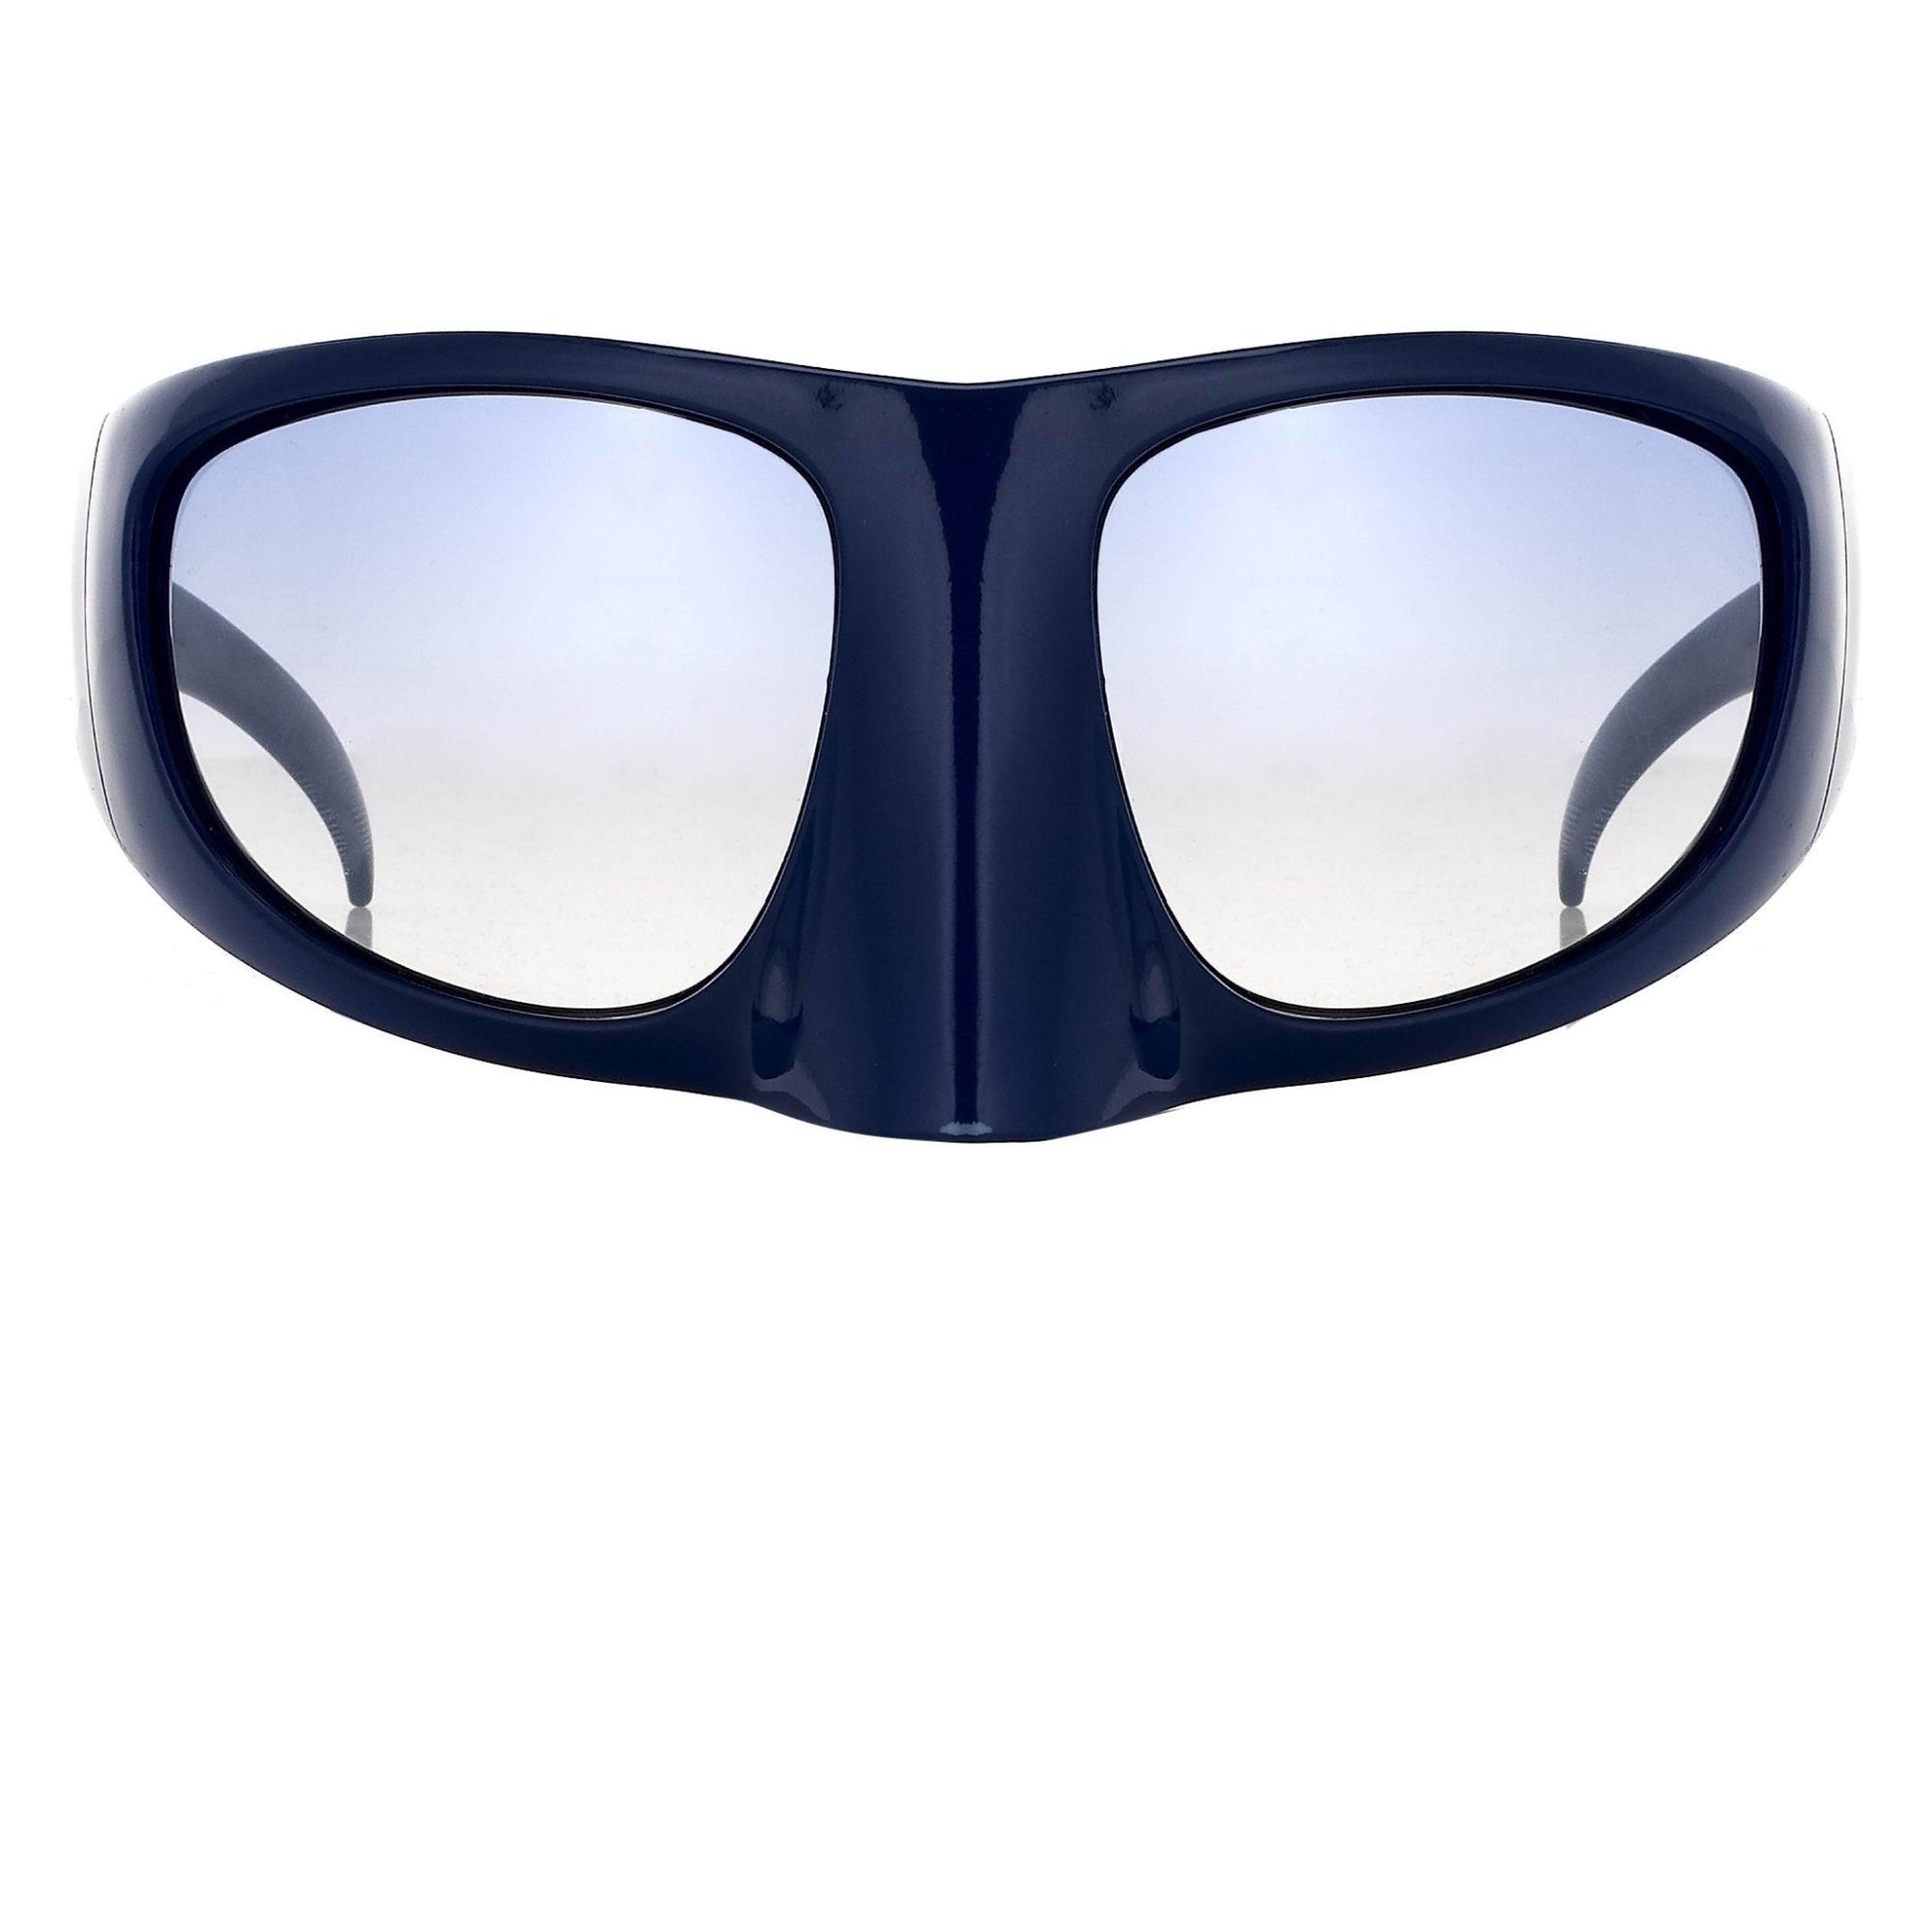 Bernhard Willhelm Sunglasses Blue Mask With Blue Graduated Lenses 8BW3C12BLUE - Watches & Crystals